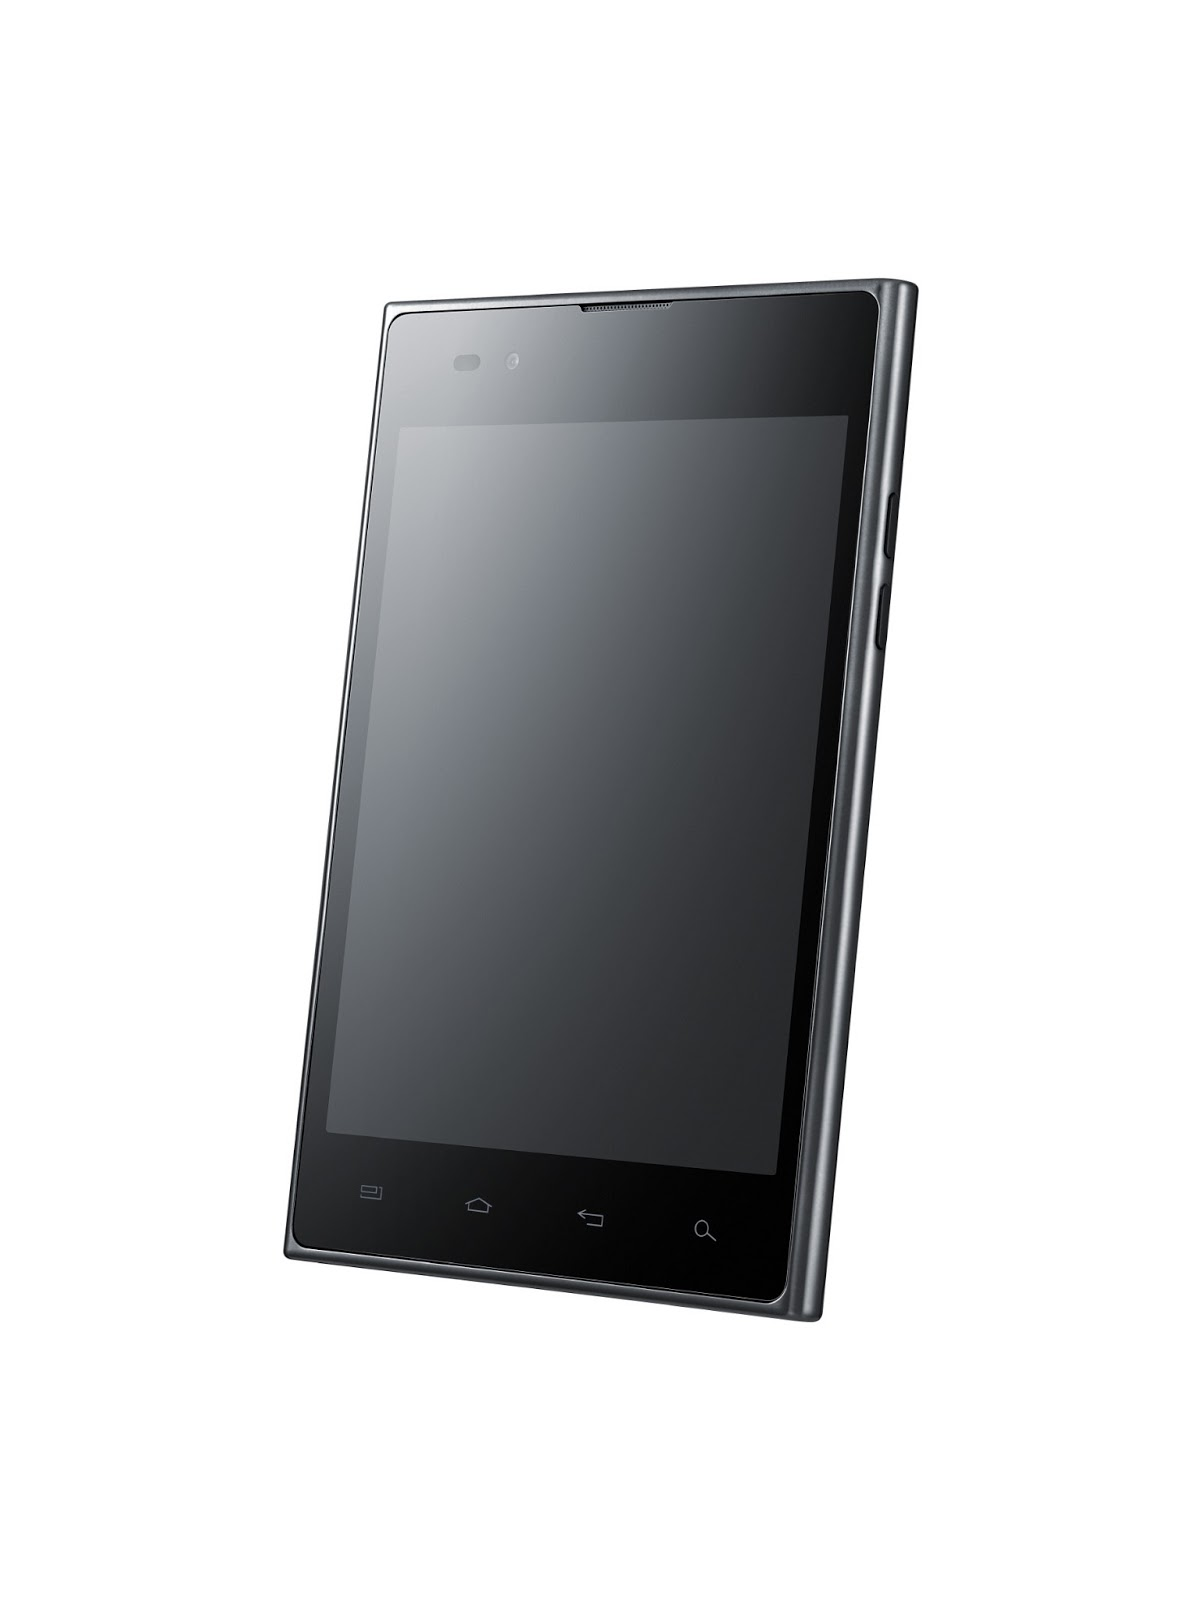 Lg optimus vu ii f200 full phone specifications - Lg Optimus Vu New Android Smartphone Mobile Phone Photos Features Images And Pictures 11